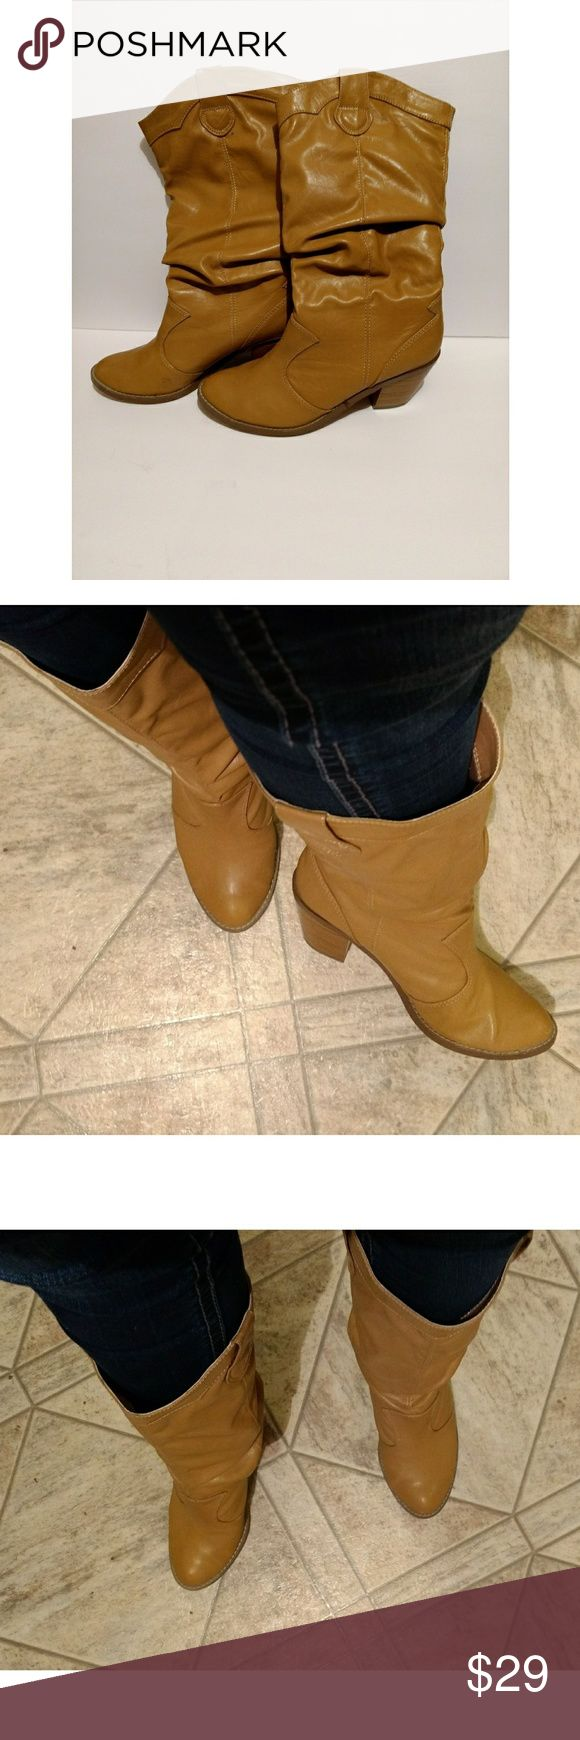 Rue 21 Boots Great Condition! Great Condition Rue 21  Tan Boots Size 10 Rue 21 Shoes Winter & Rain Boots